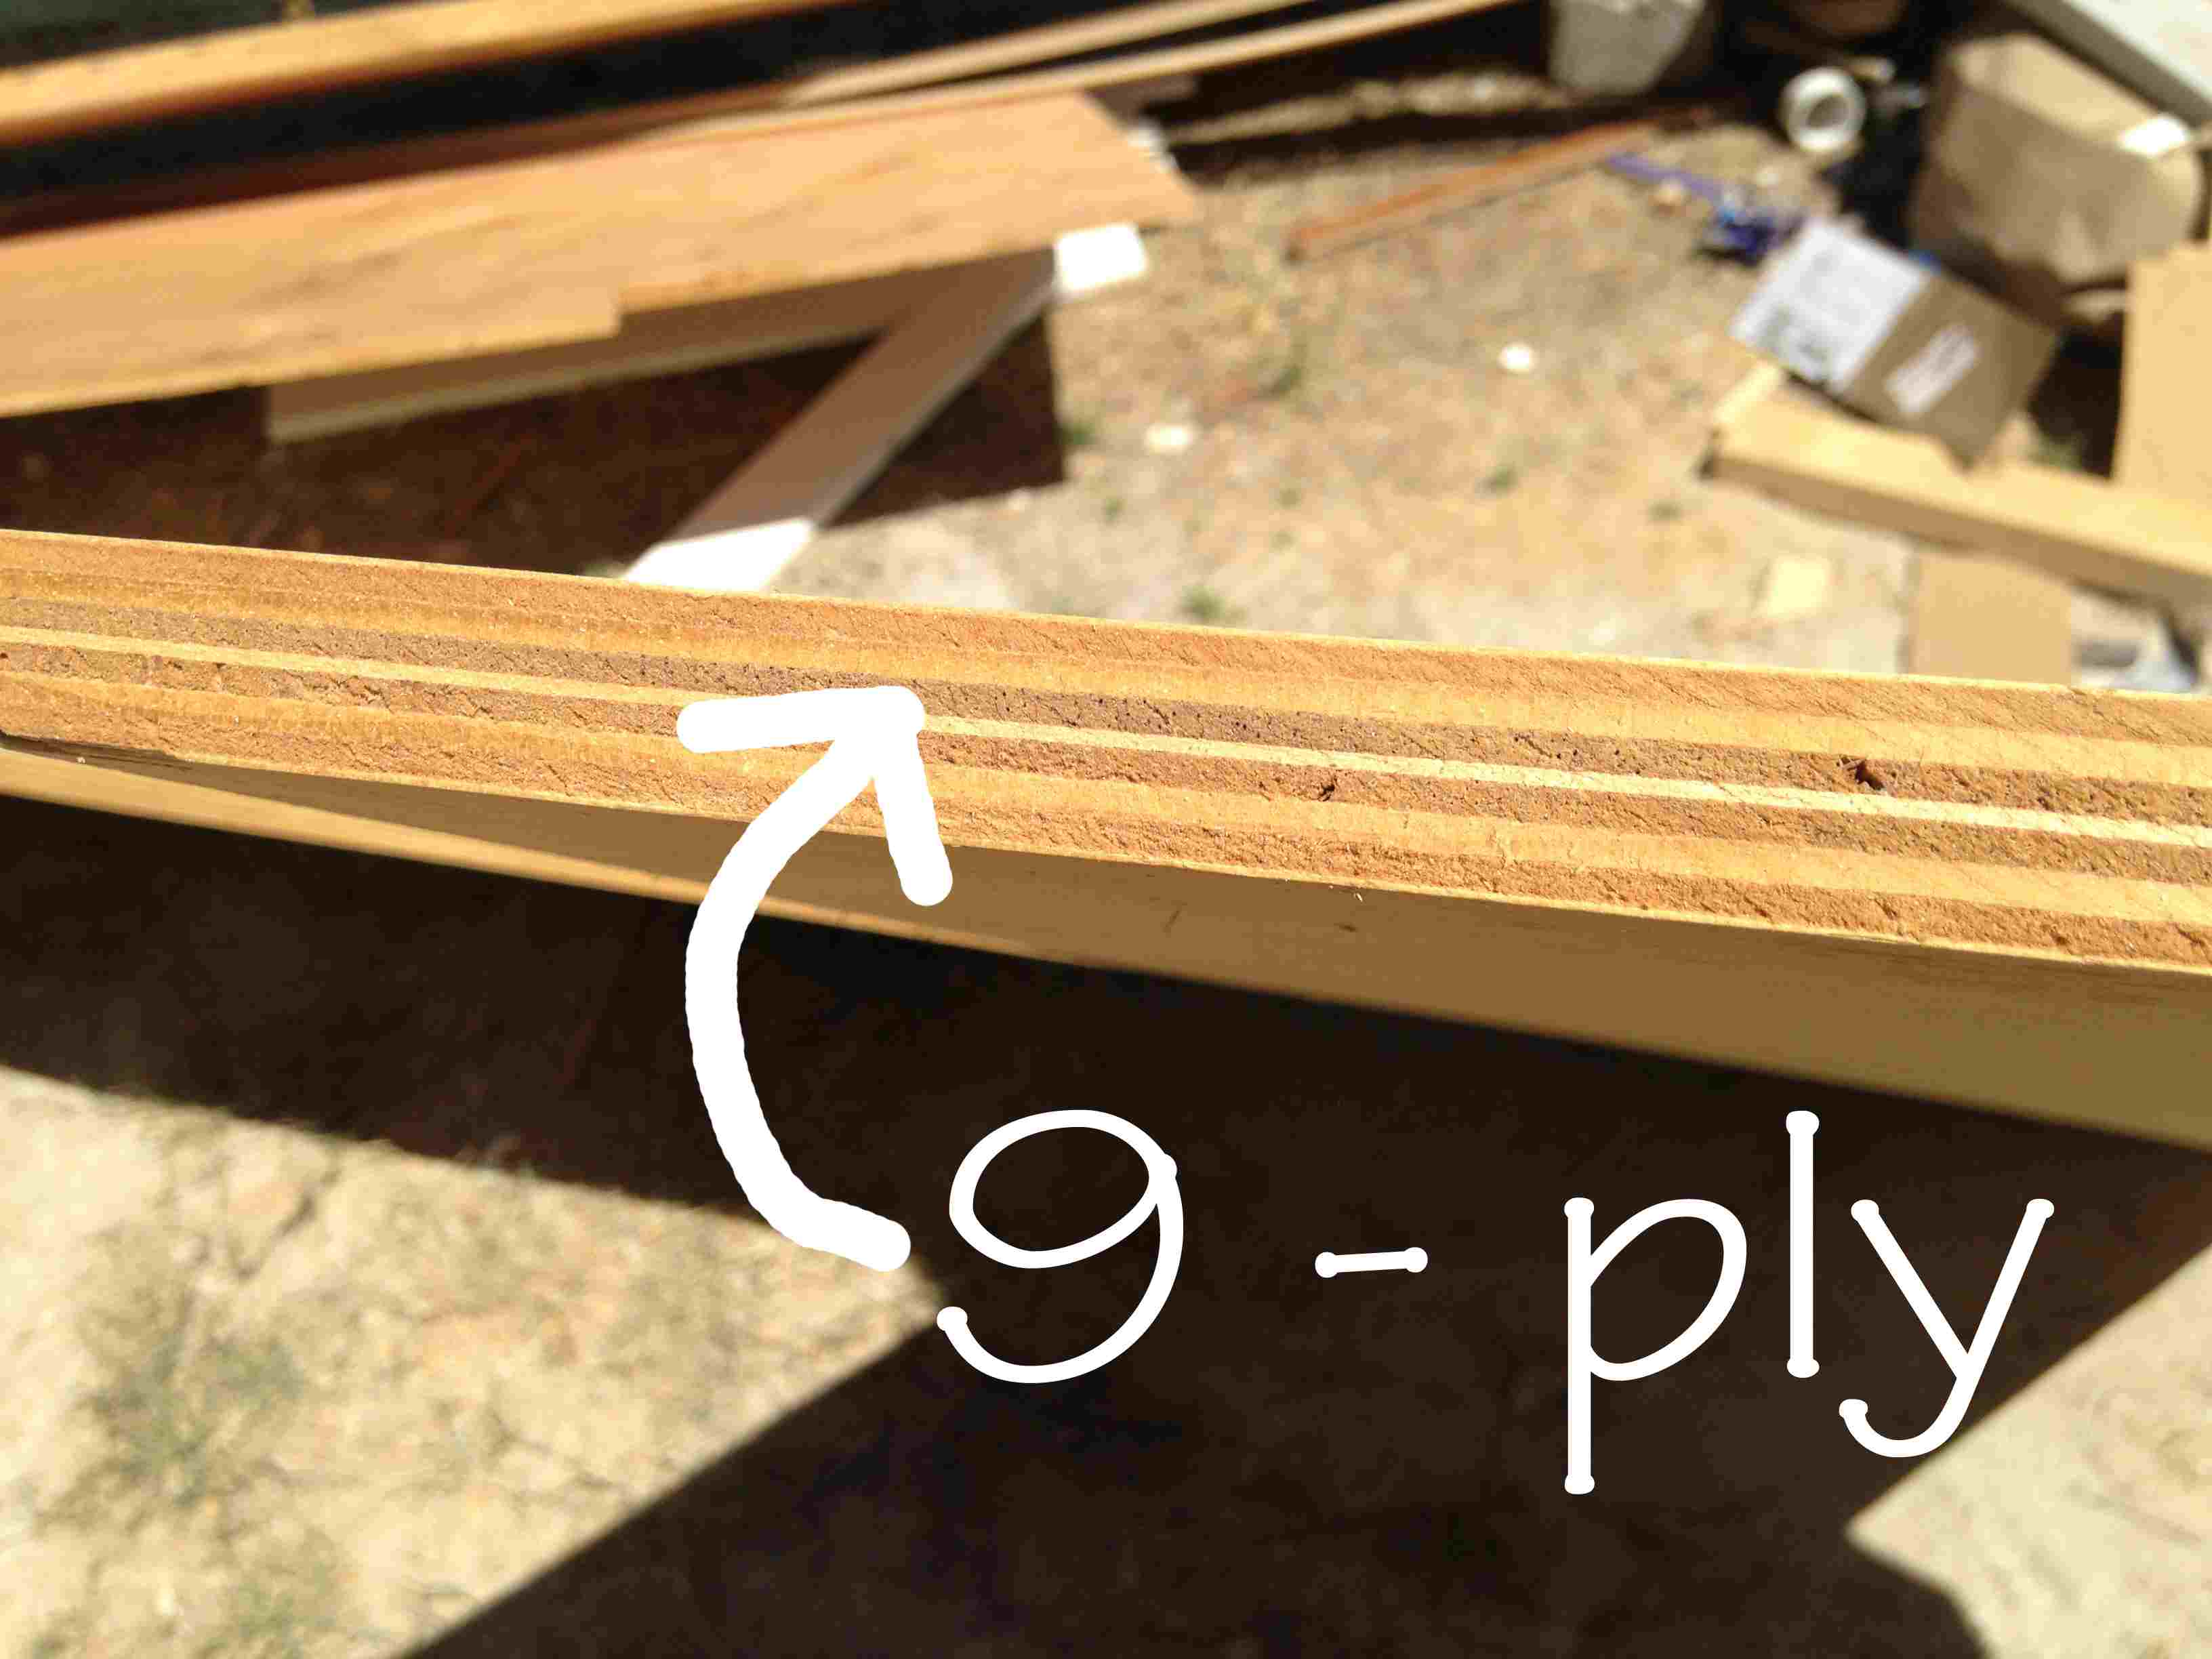 Versus Plywood Cabinet Box Construction